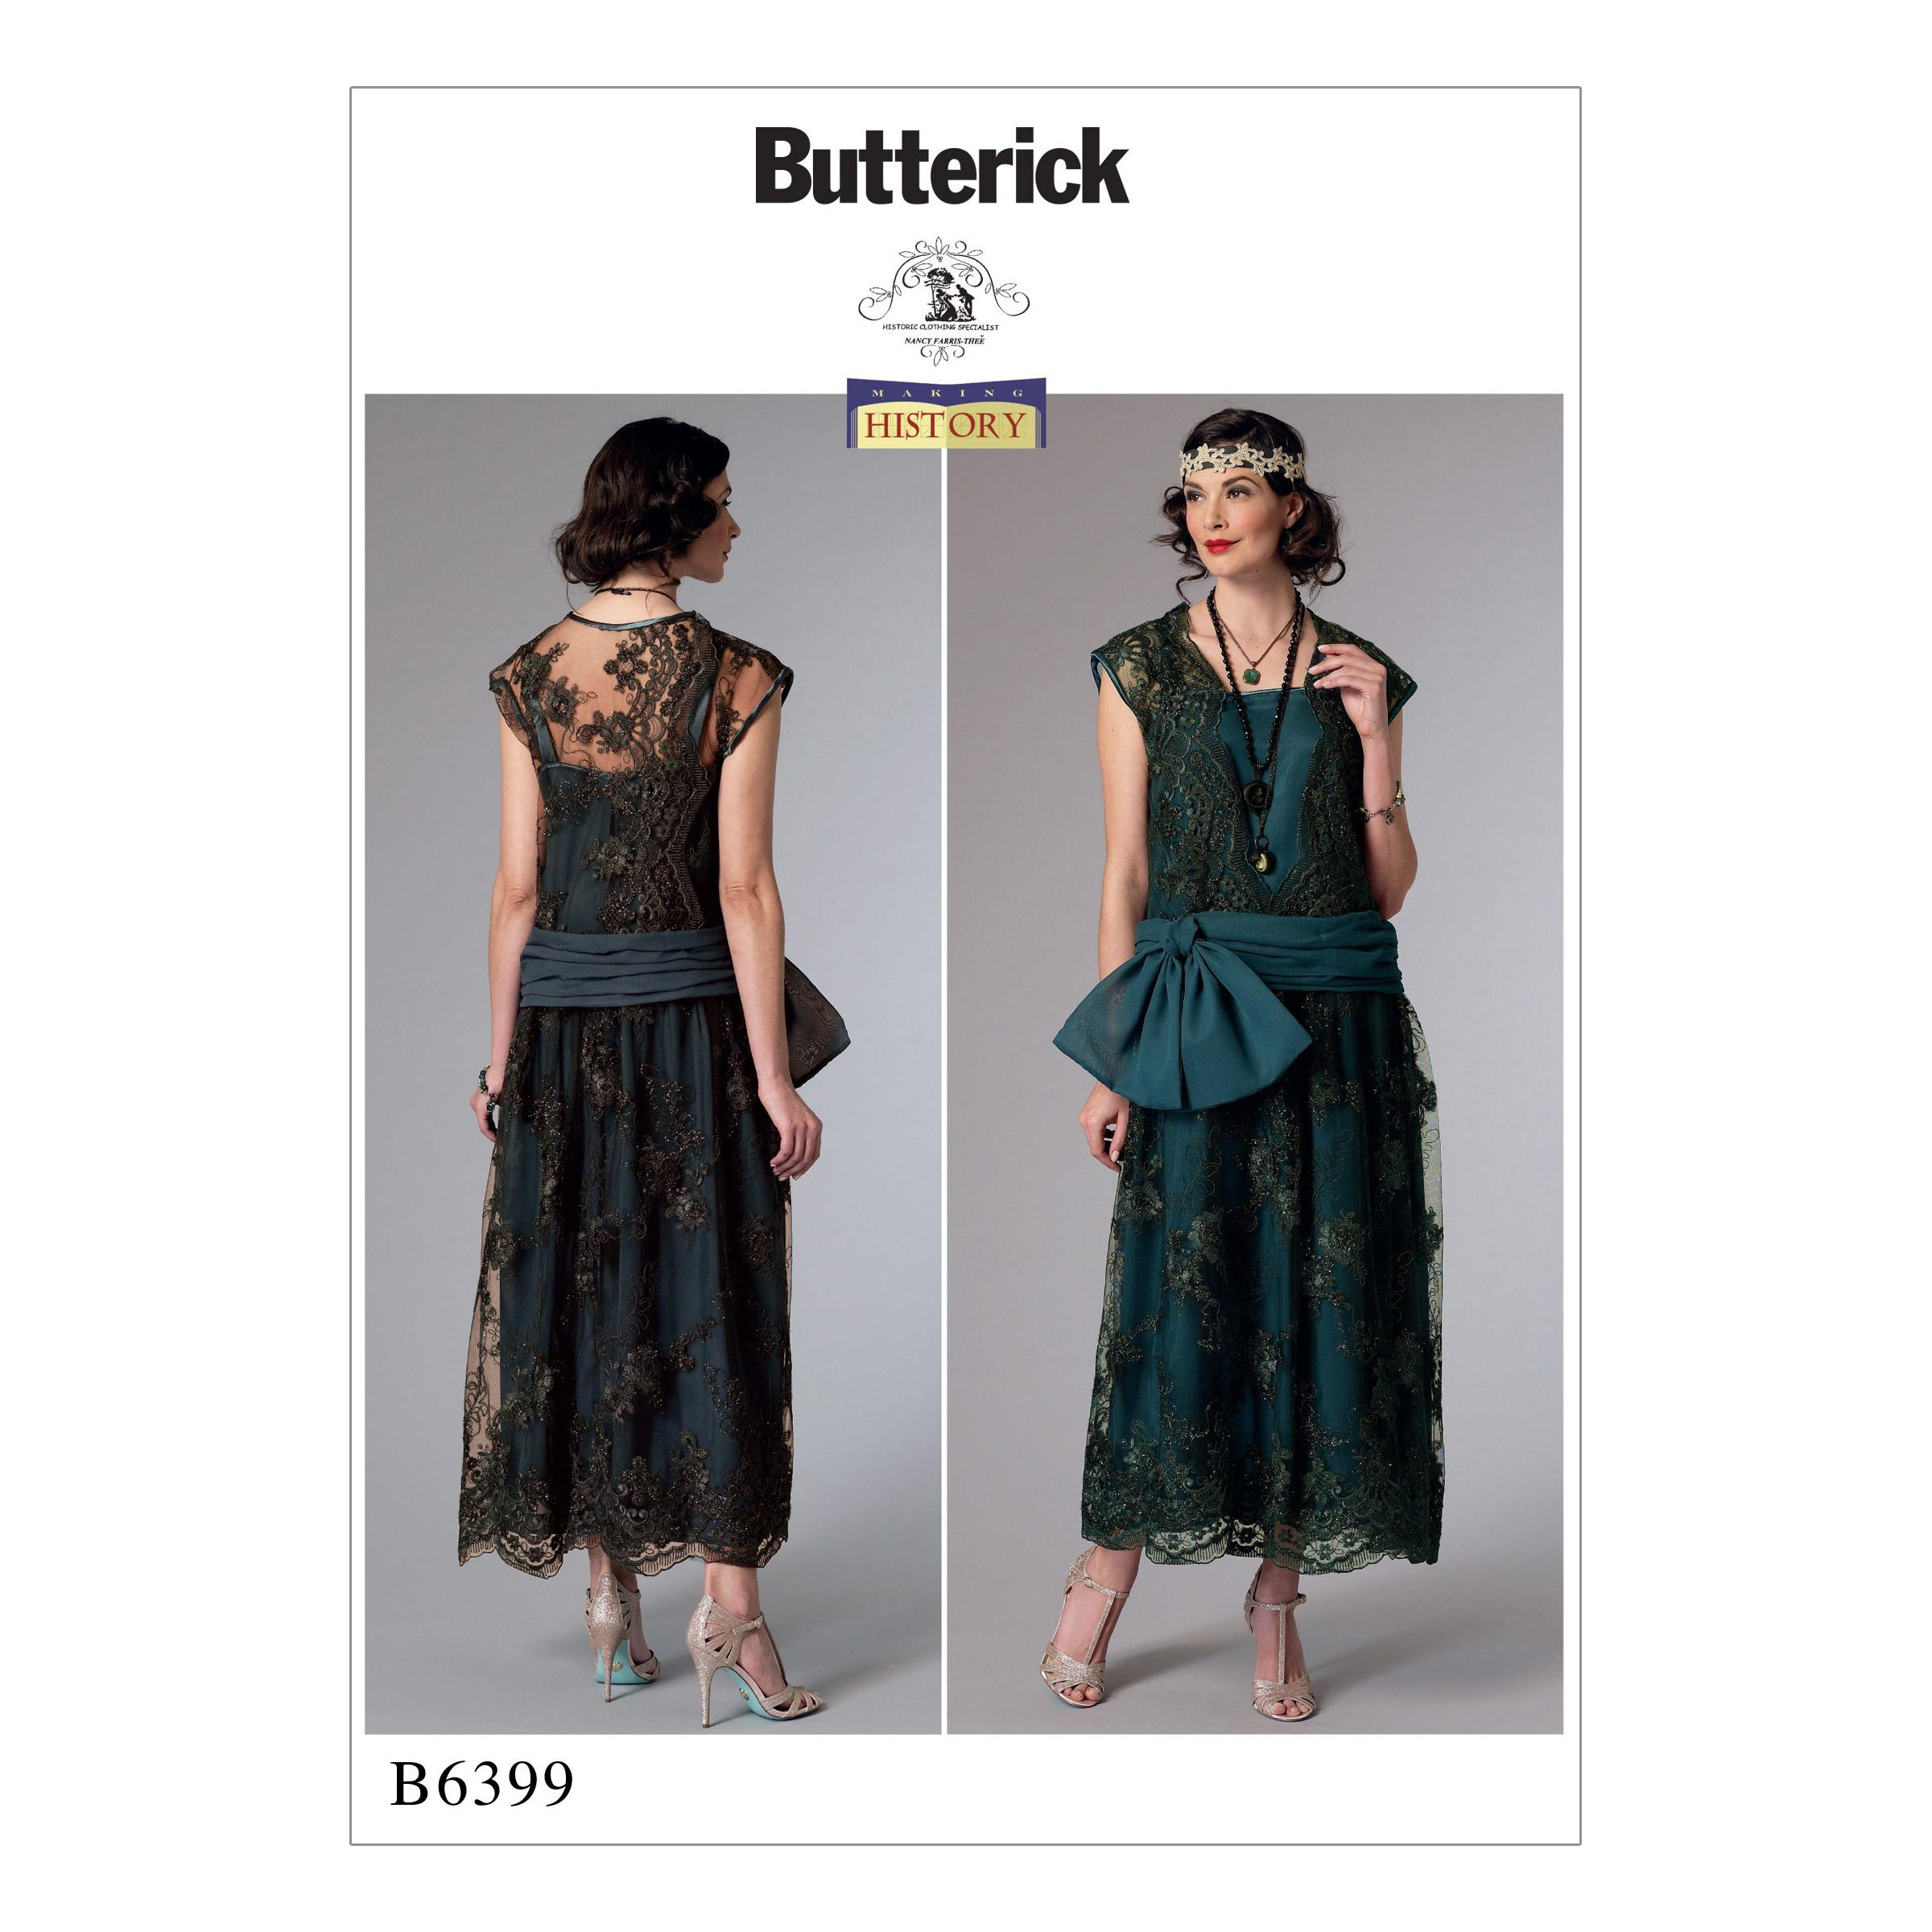 Butterick B6399 Misses' Drop-Waist Dress with Oversized Bow